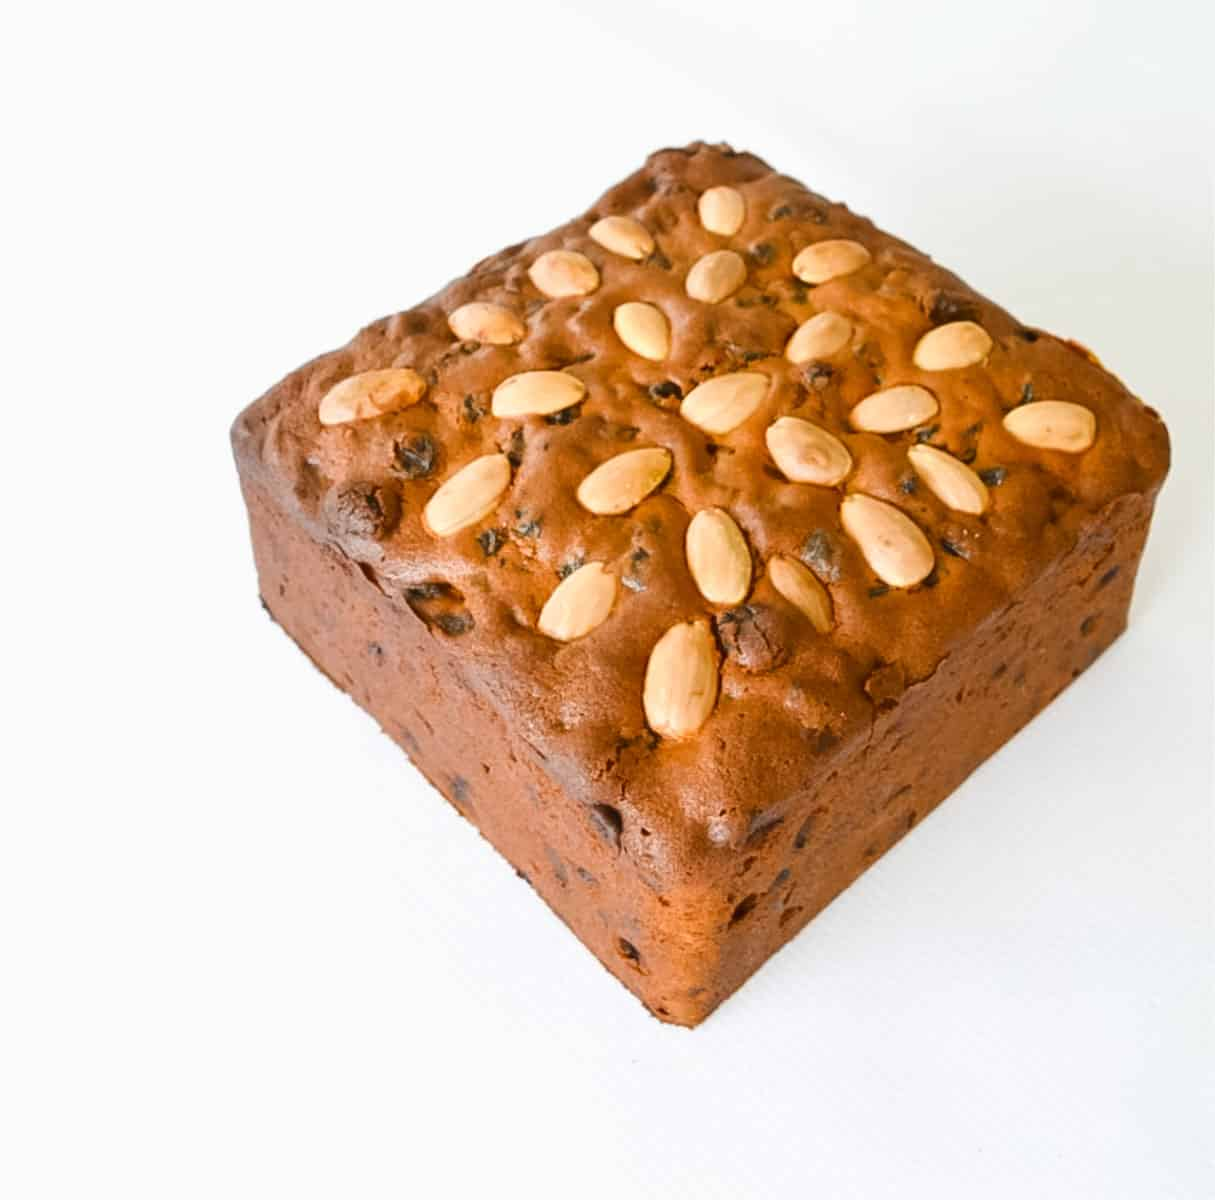 A square Christmas cake decorated with almonds on top